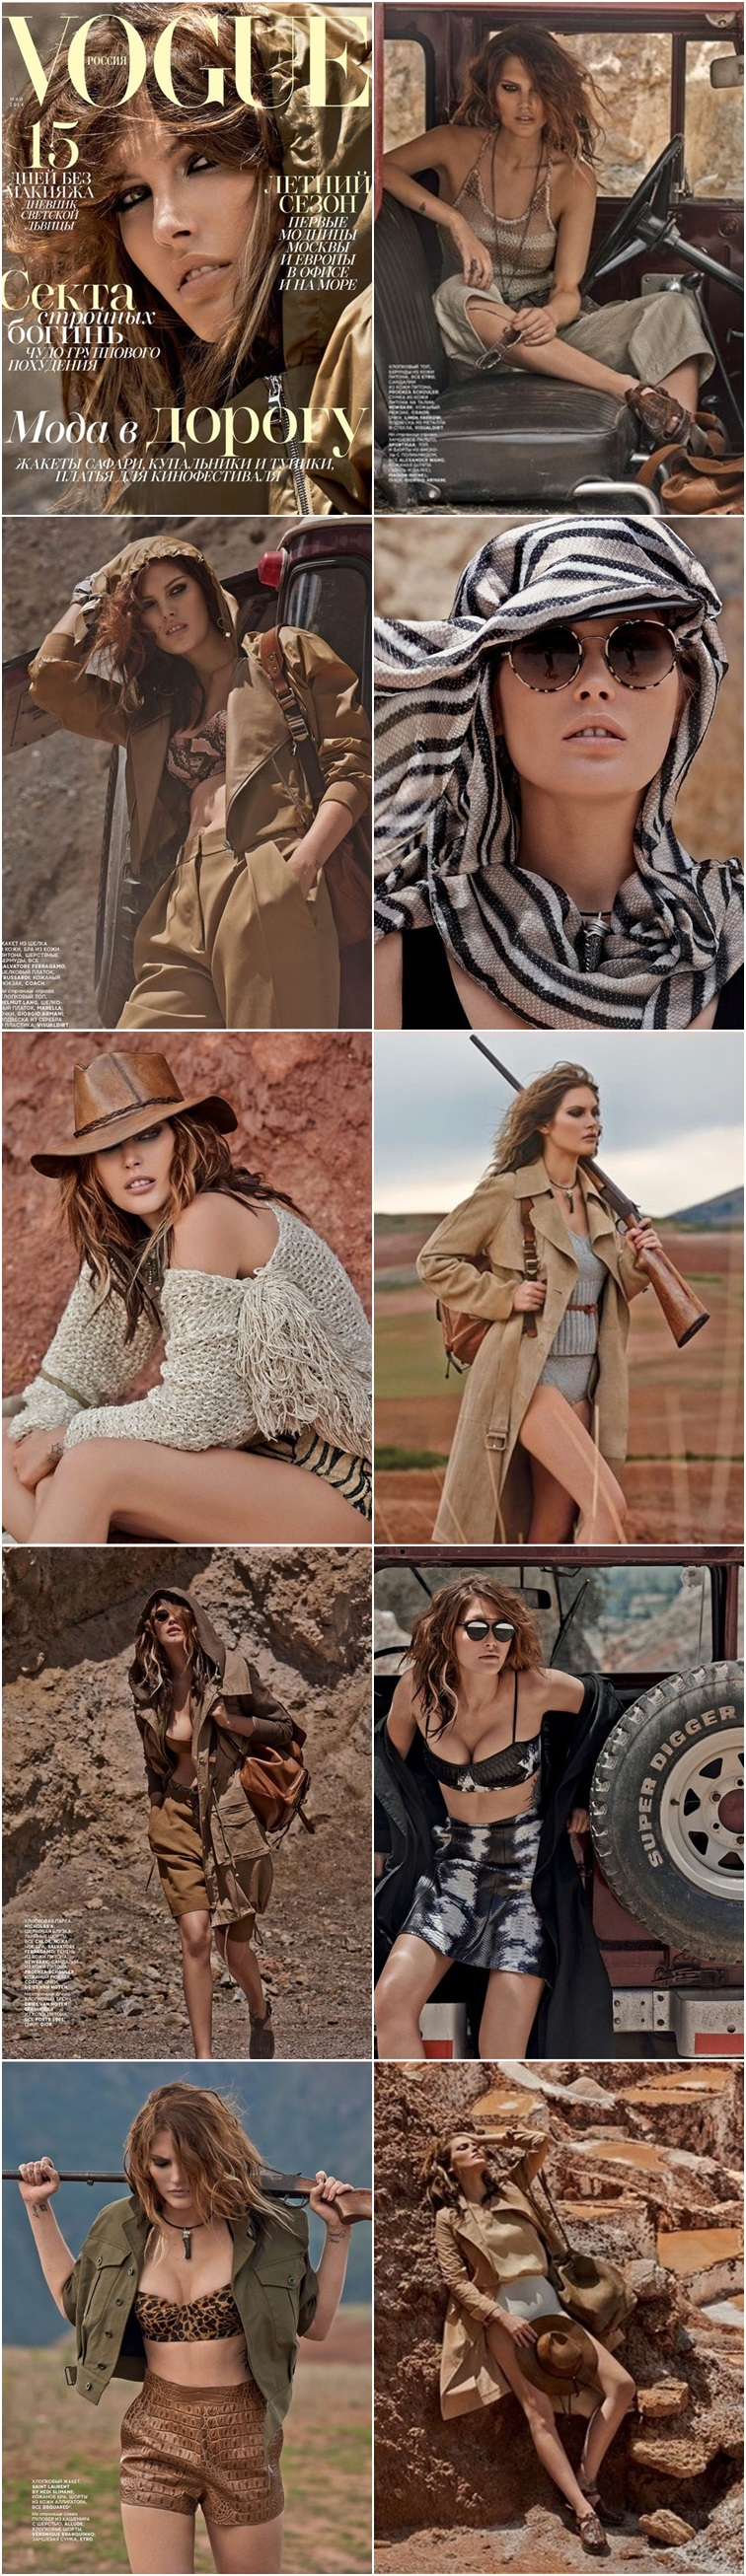 catherine-mcneil-mariano-vivanco-fashion4addicts